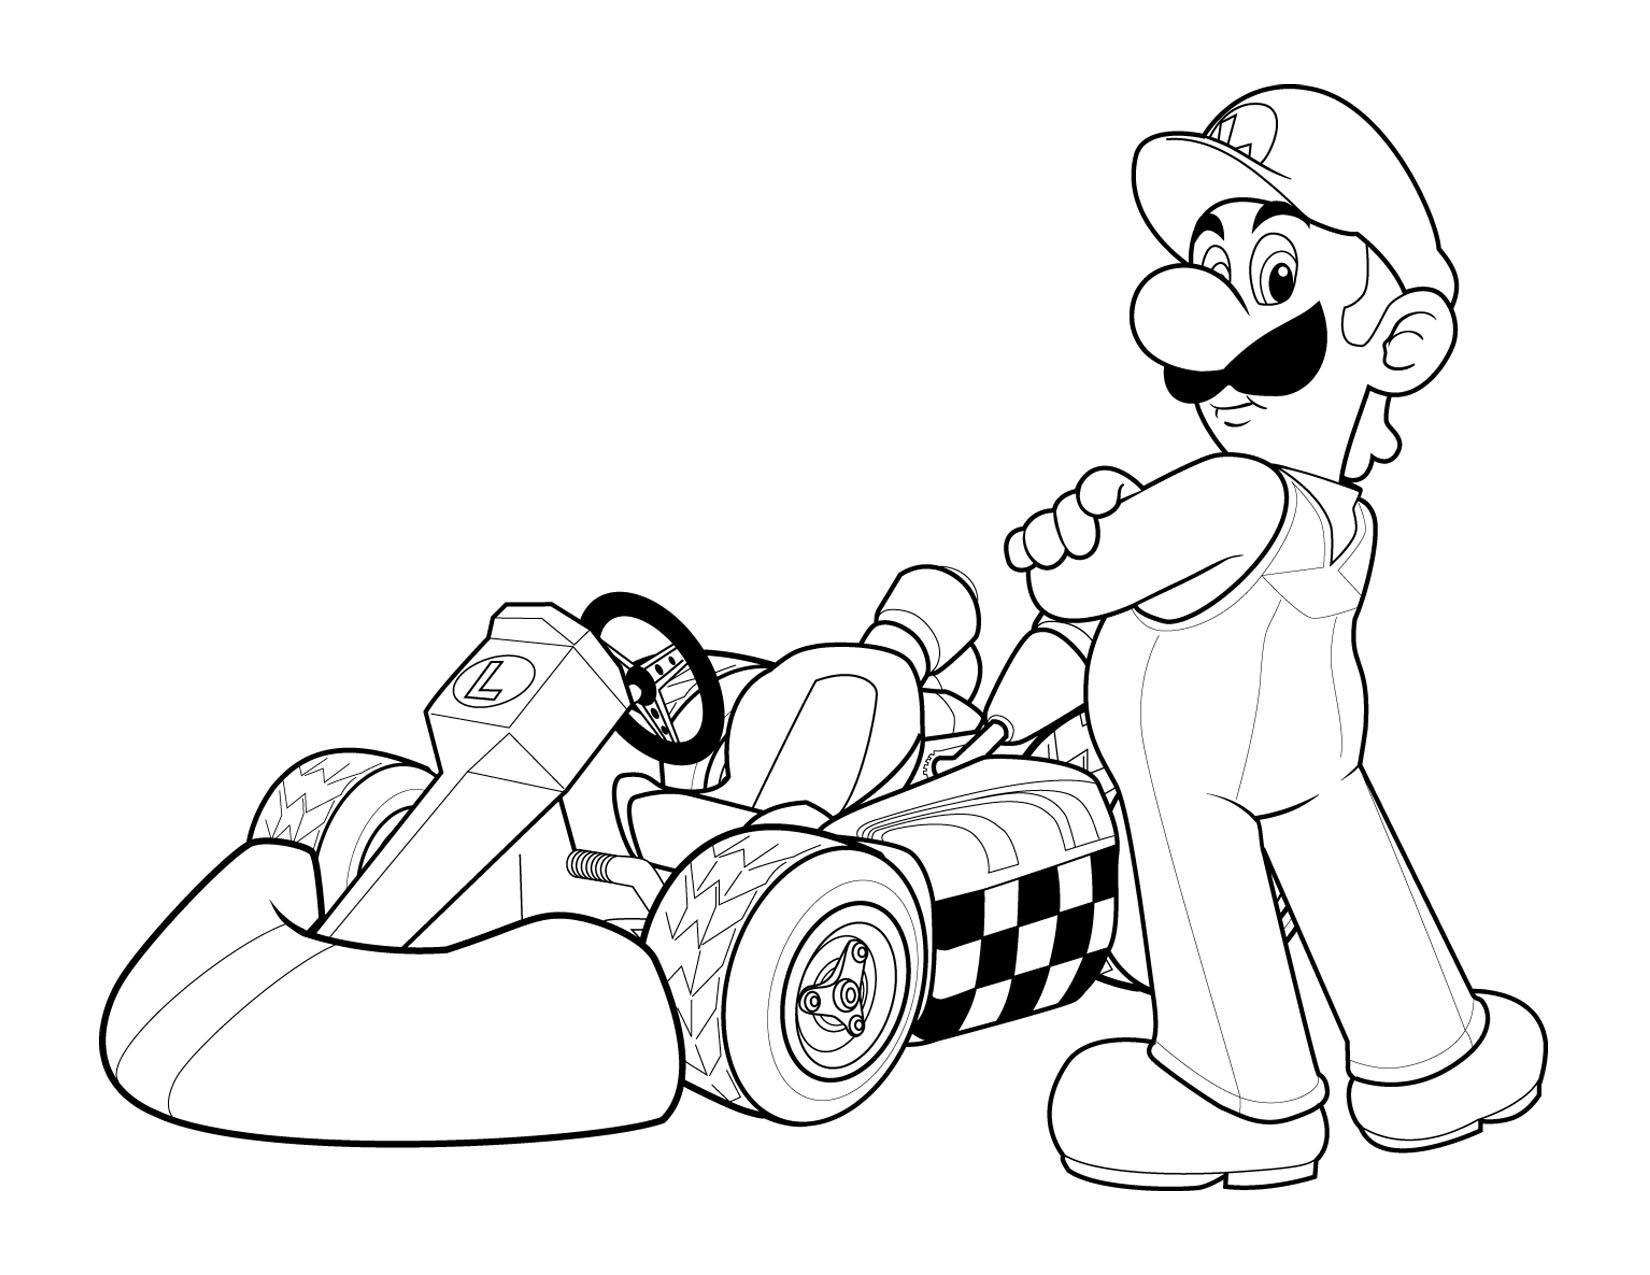 Printable Coloring Pages For Kids Cars Free - Gianfreda.net